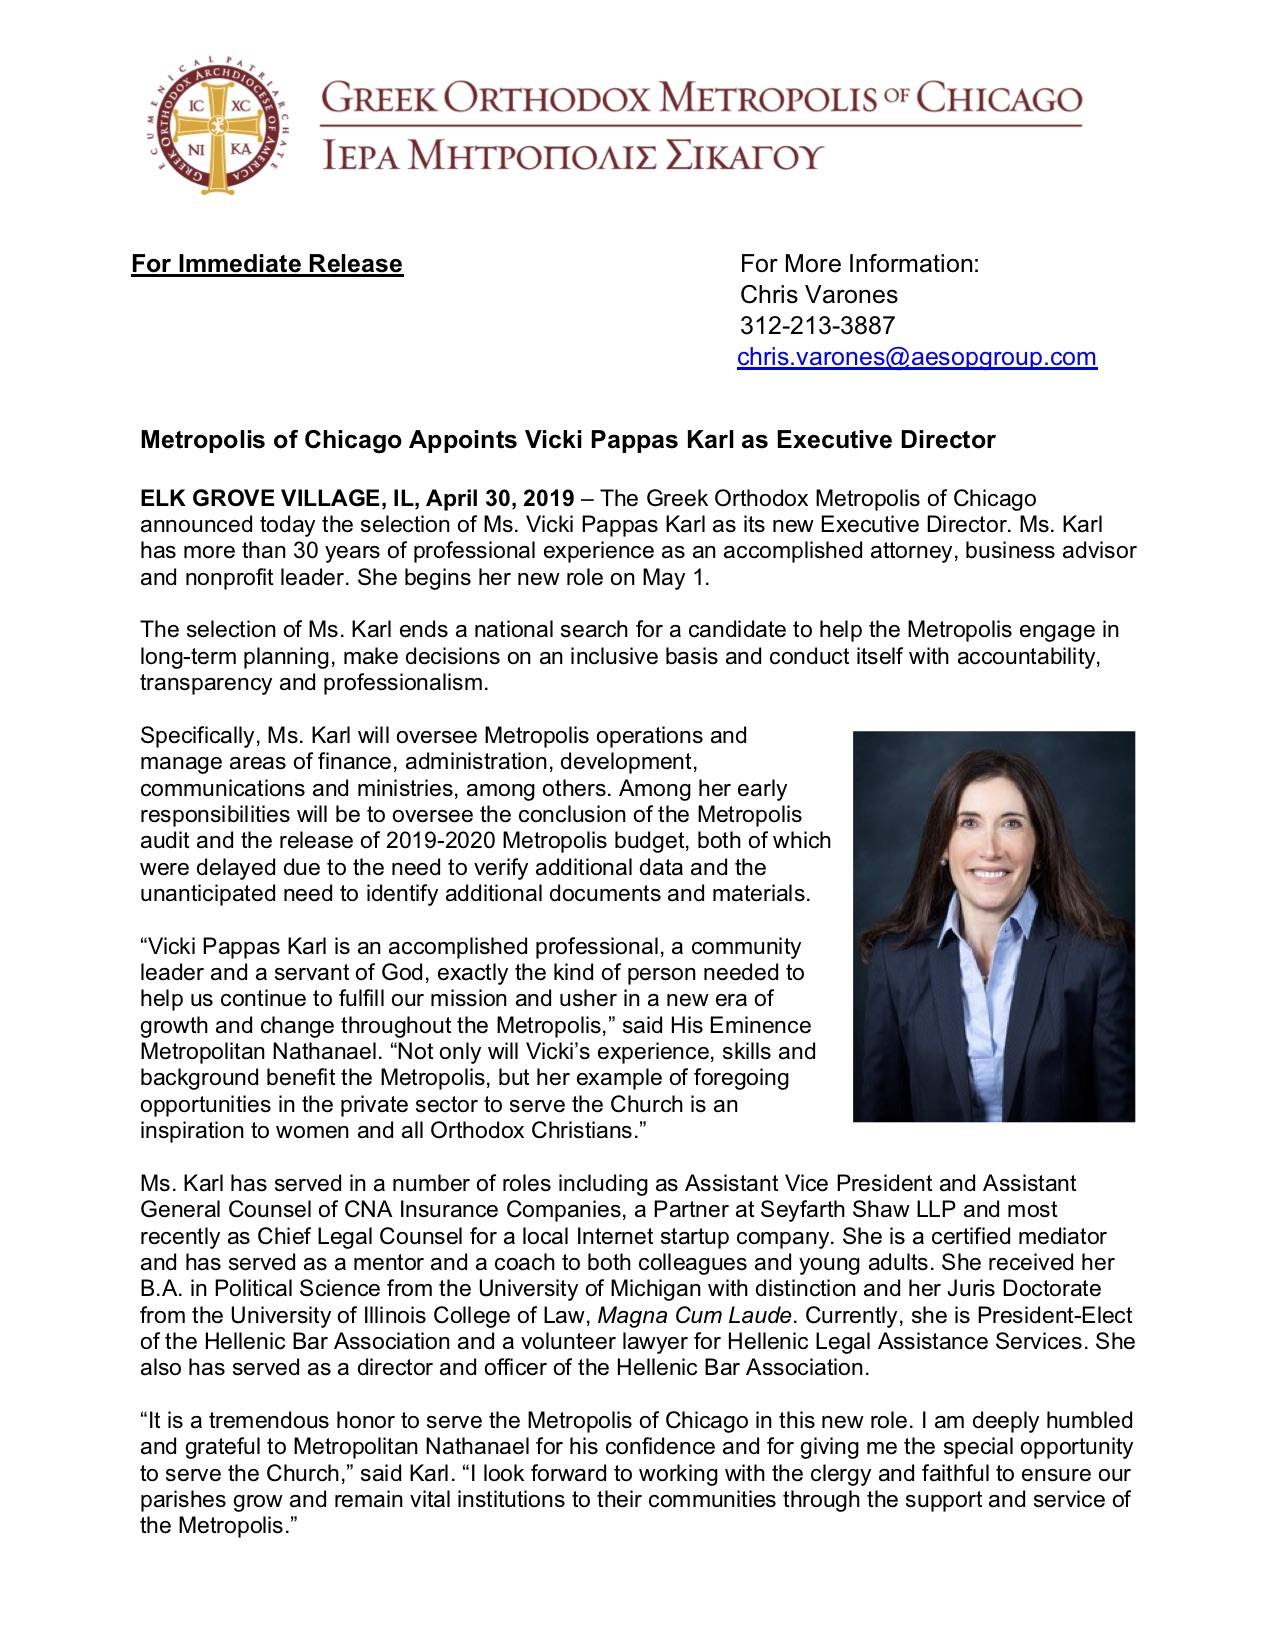 Executive Director Vicki Karl Press Release Apr 30.jpg